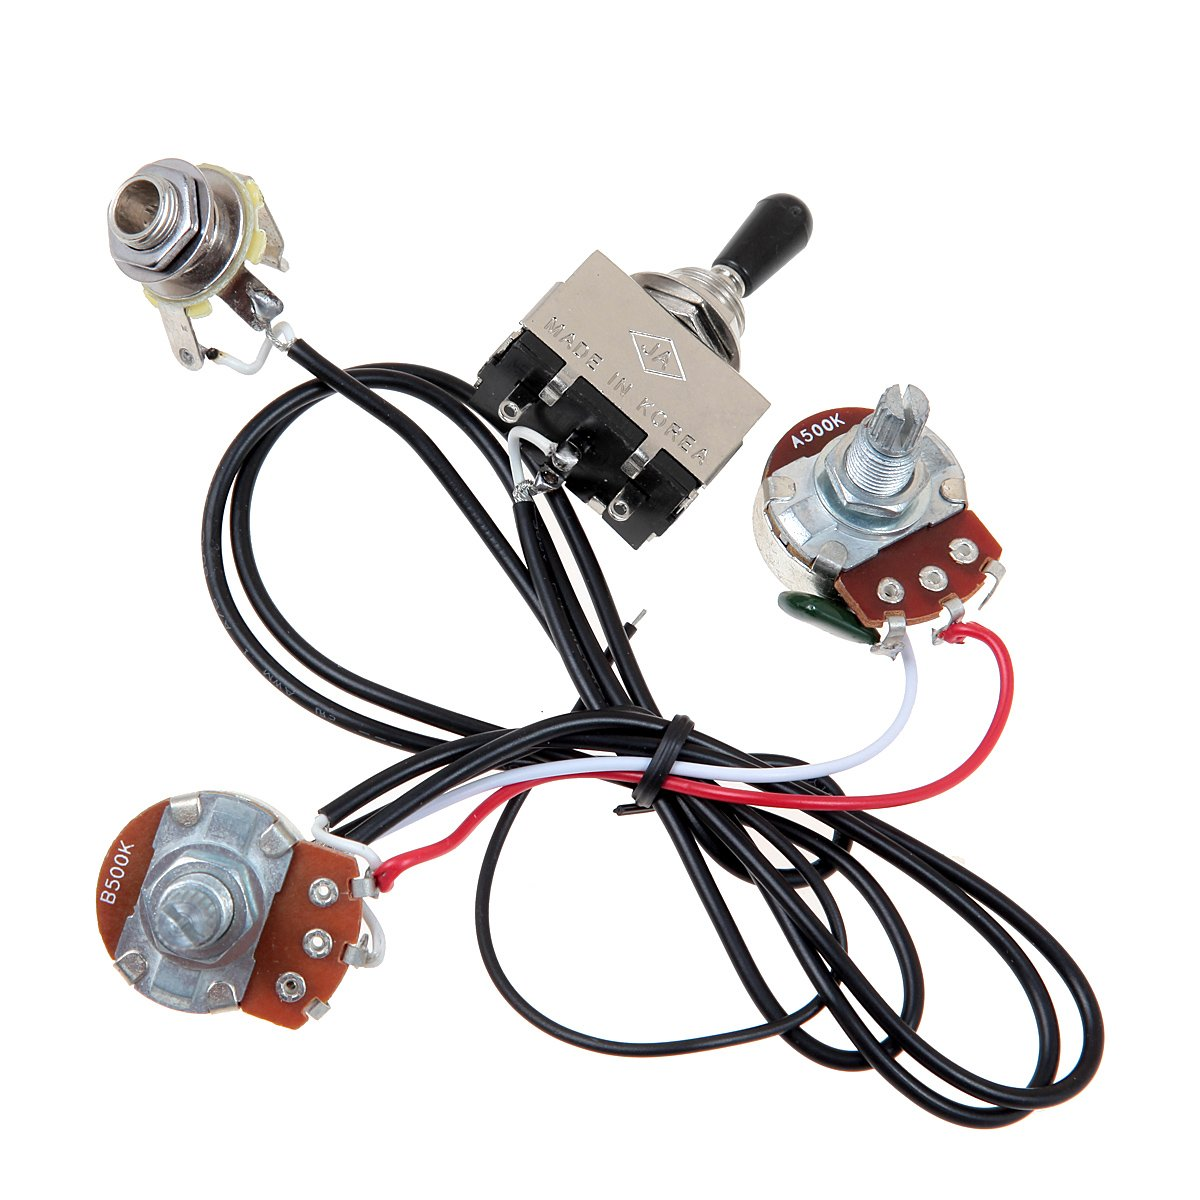 71%2BaA7TOd1L._SL1200_ amazon com kmise mi0321 guitar wiring harness prewired two pickup prewired guitar harness at readyjetset.co